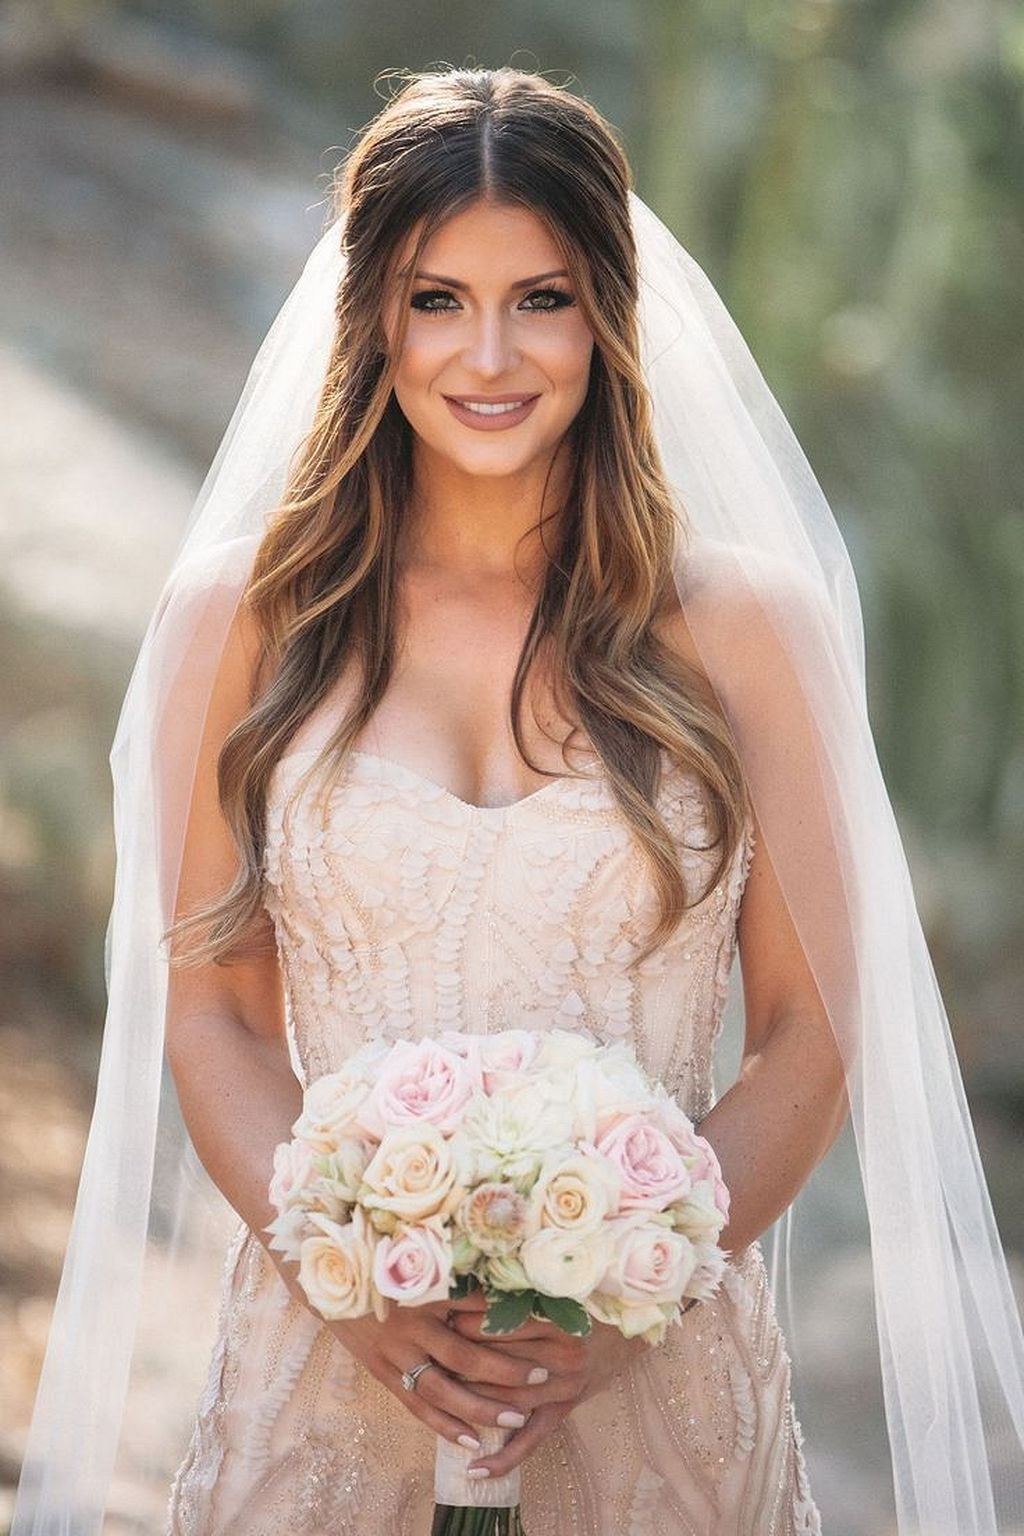 Most Recent Wedding Hairstyles Down With Veil Pertaining To Great 40 Wedding Hair Down With Veil Ideas Https://weddmagz/ (View 2 of 15)